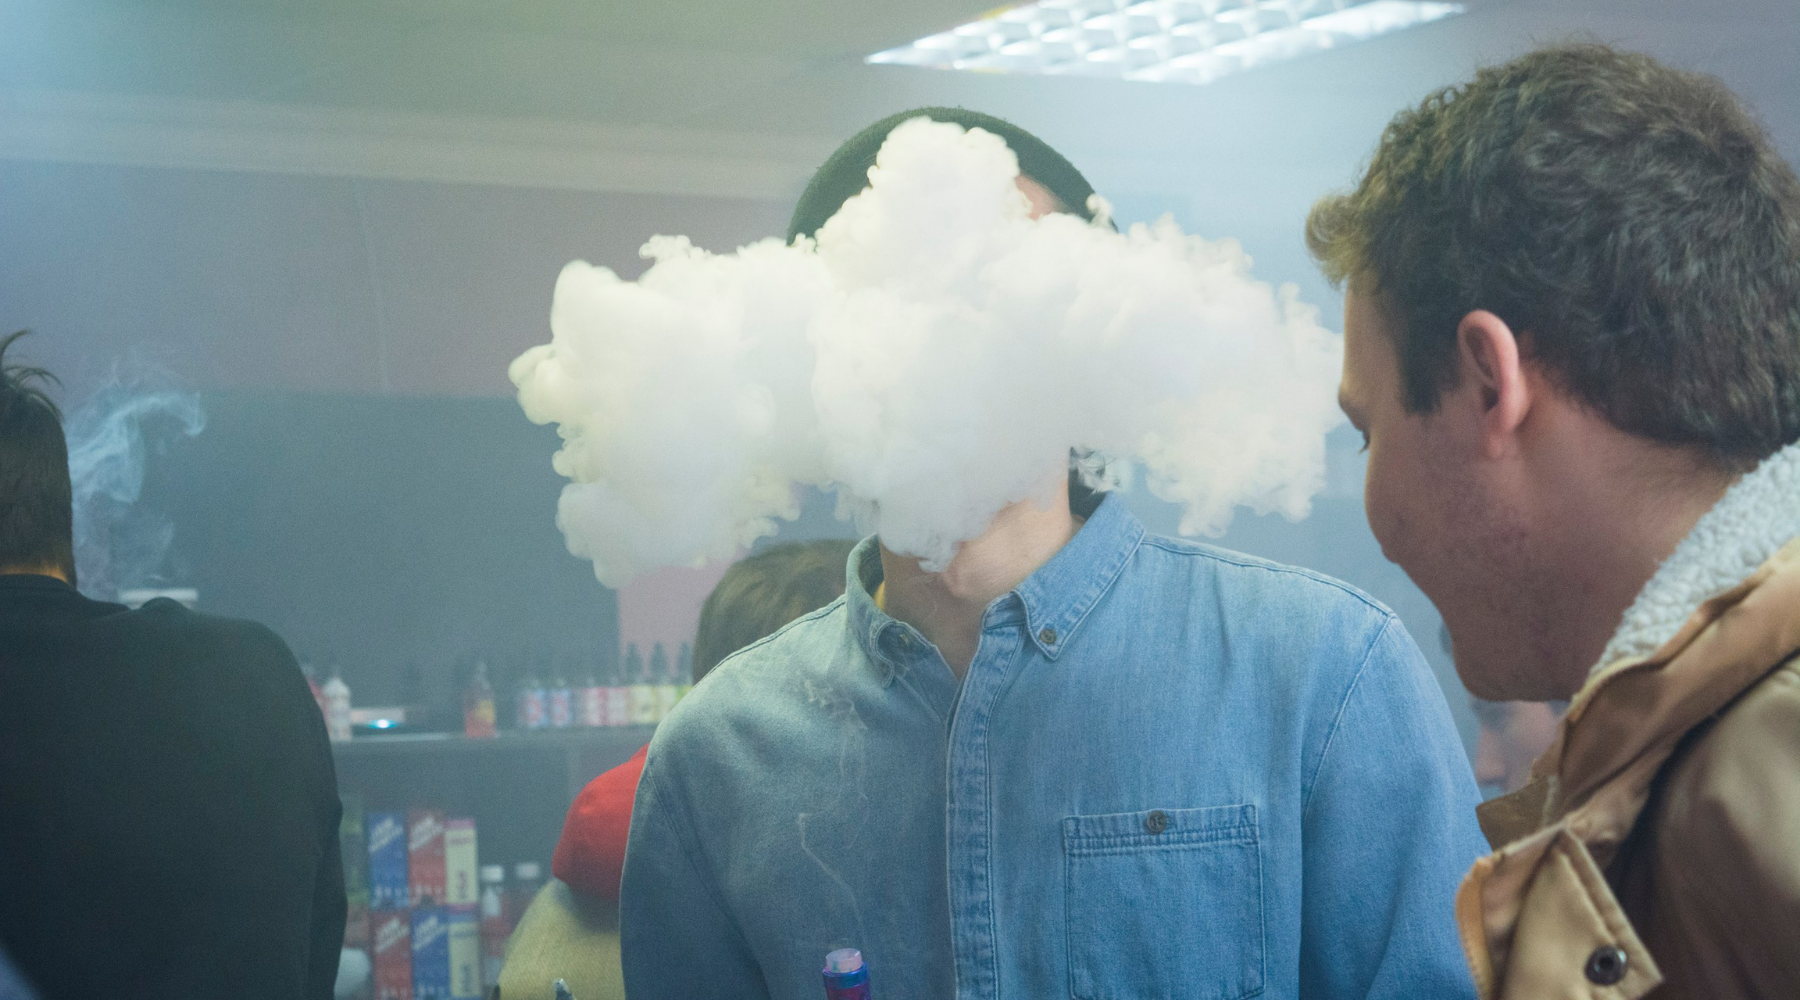 Vape Shop in Reading, UK